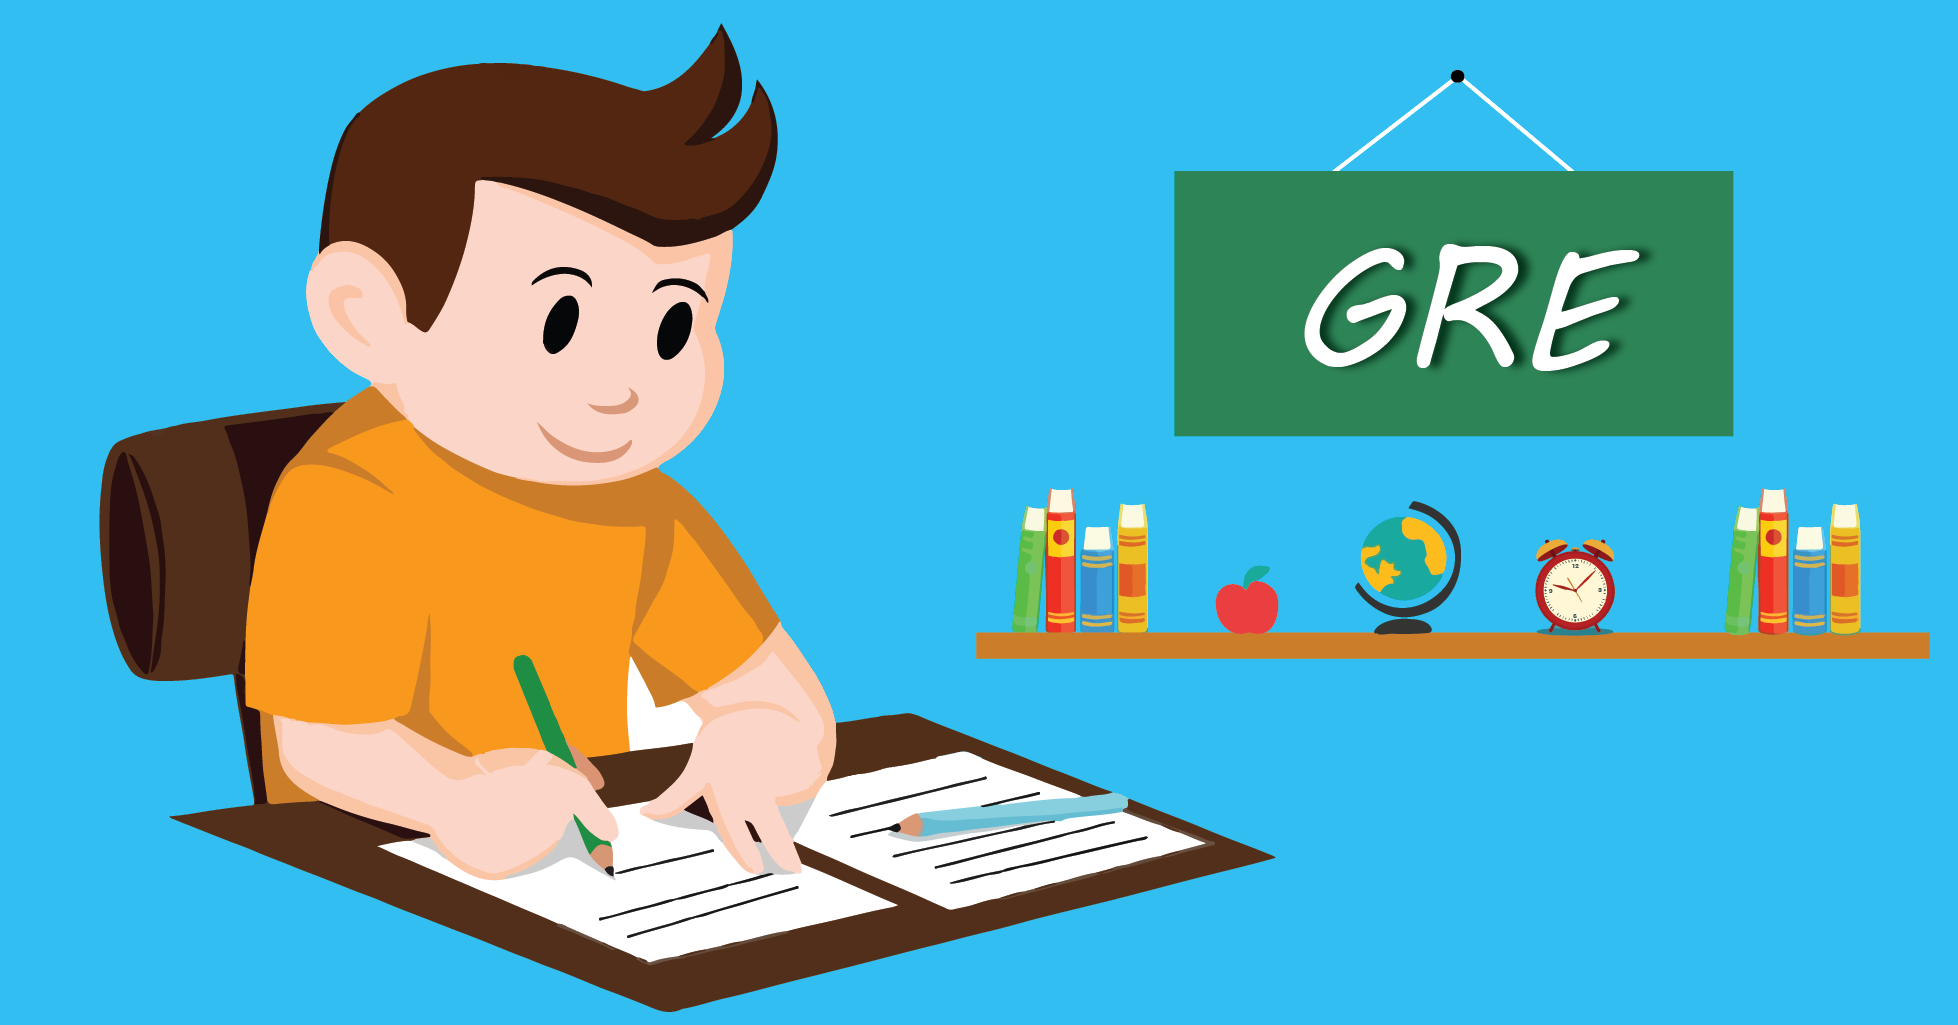 Gre on Study Helps